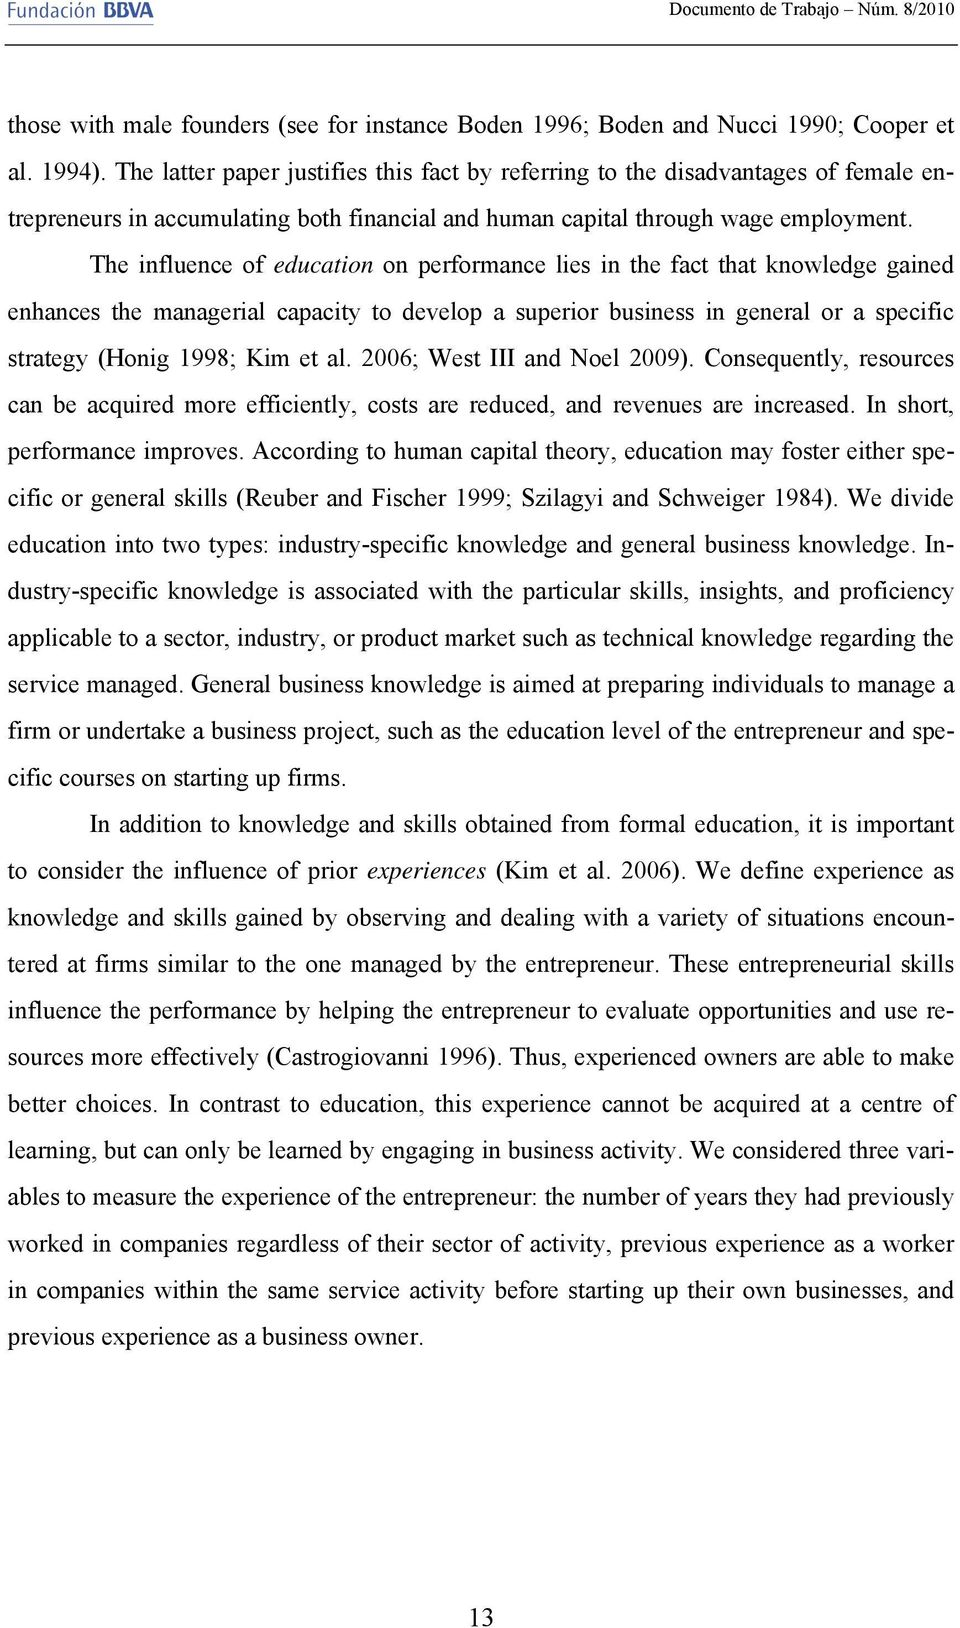 The influence of education on performance lies in the fact that knowledge gained enhances the managerial capacity to develop a superior business in general or a specific strategy (Honig 1998; Kim et